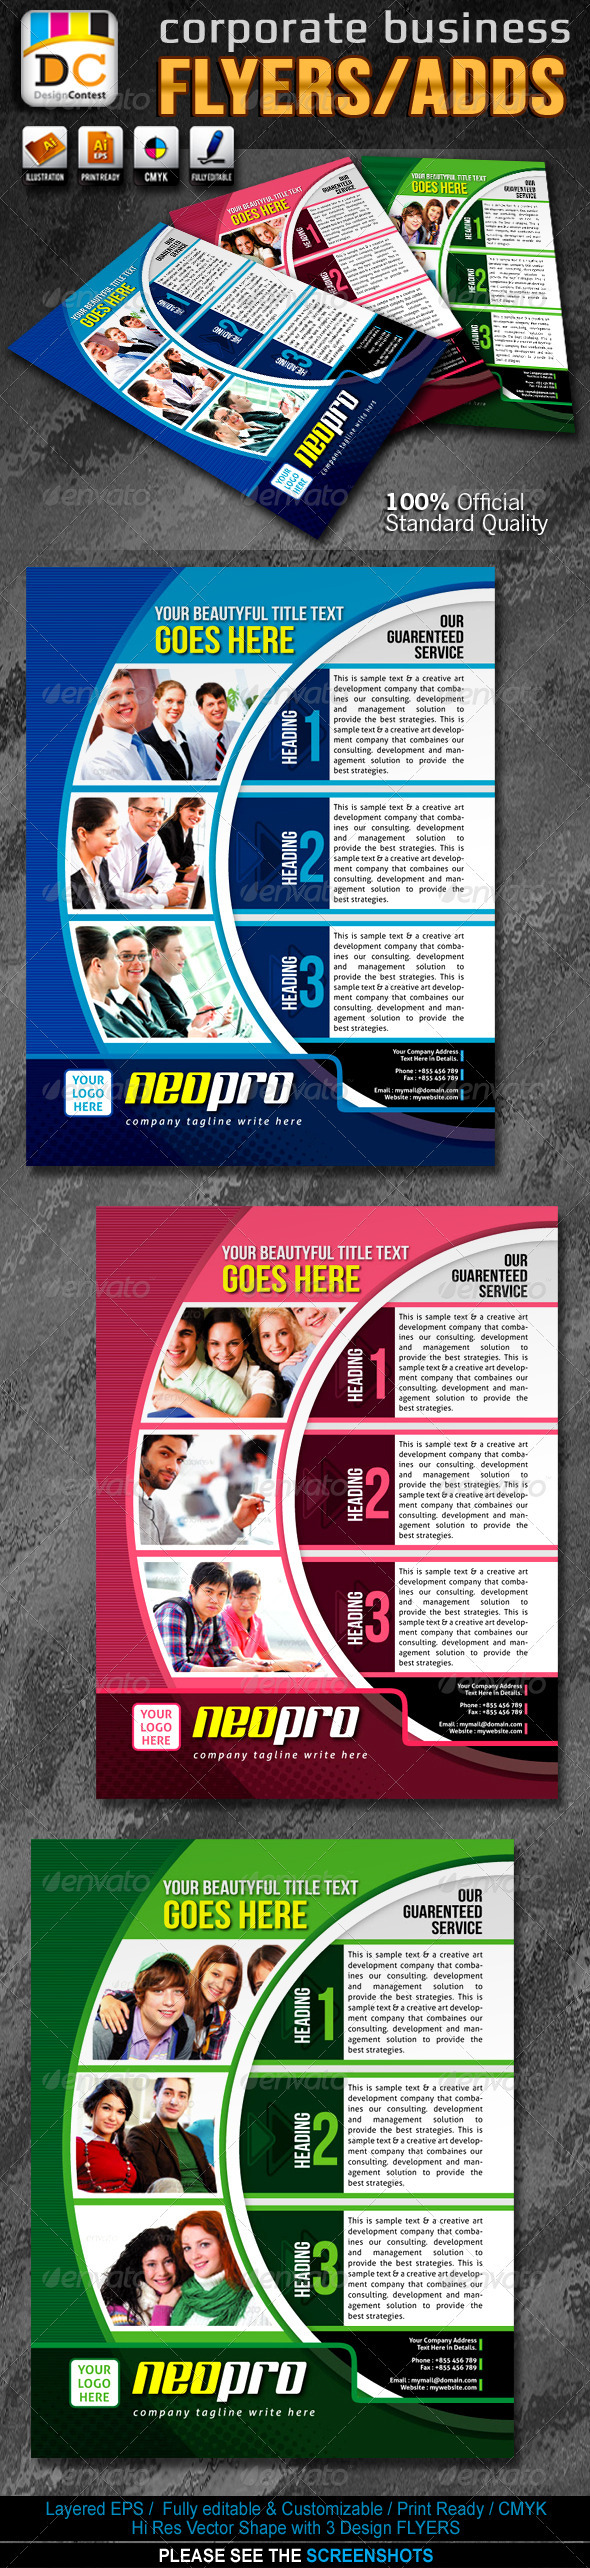 Neo Pro Corporate Business Flyers/Adds  - Corporate Flyers